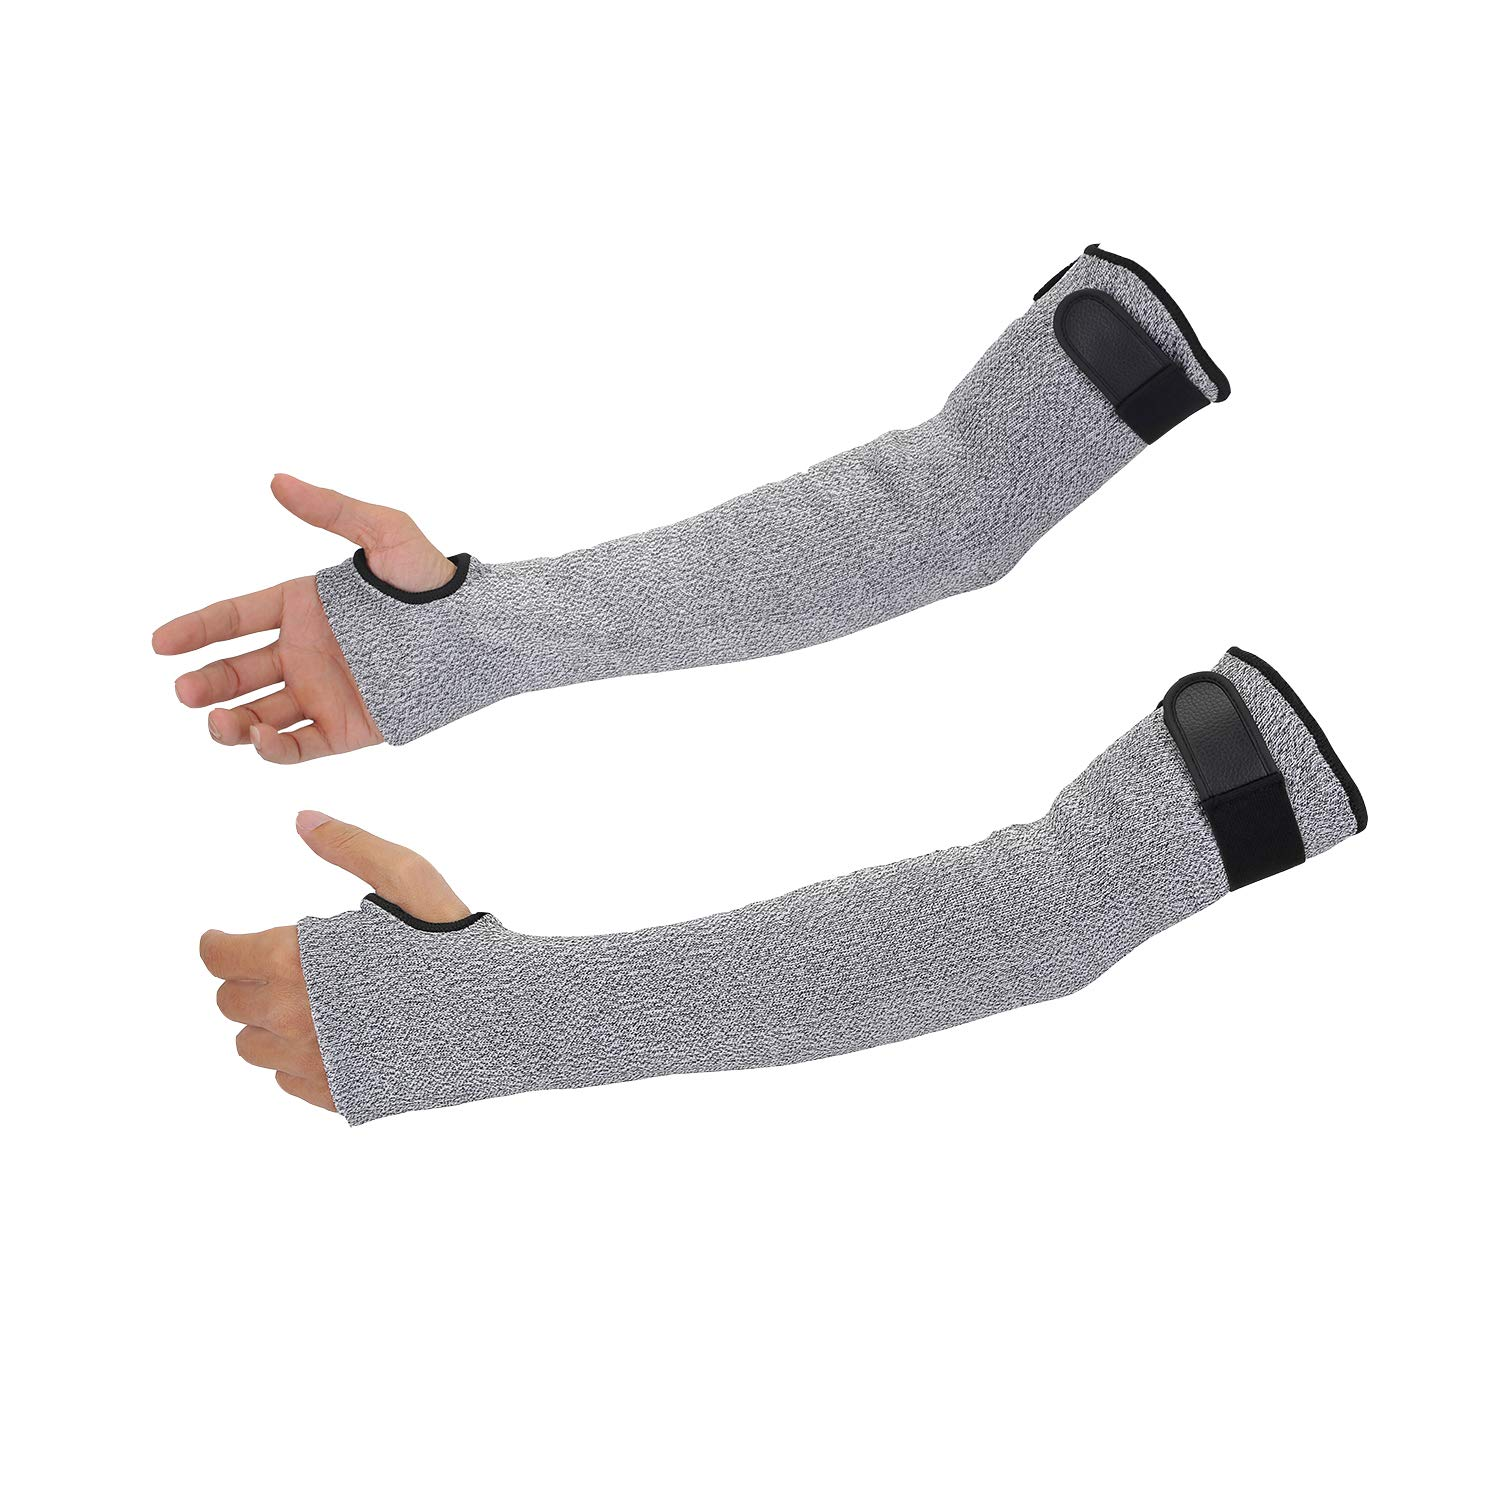 Cut Resistant Sleeves with Thumb Hole, Safety Protective Sleeves Abrasion Resistant with Level 5 Protection, Double Ply Arm Guards with 18 inch Long Soft Breathable Idea for Gardening Glass Handling